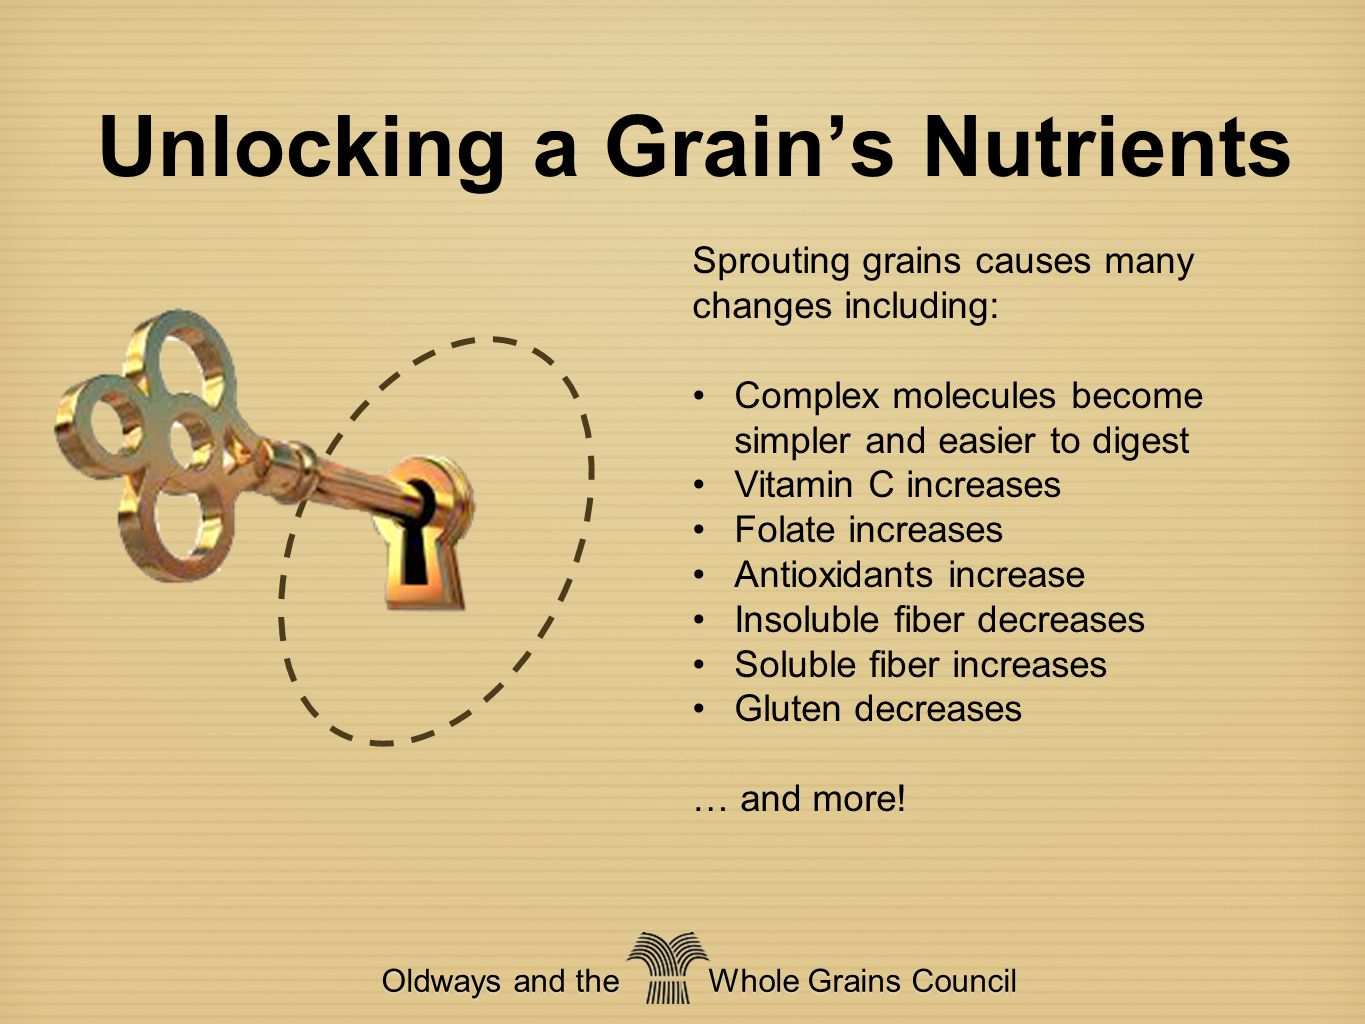 Unlocking a Grain's Nutrients